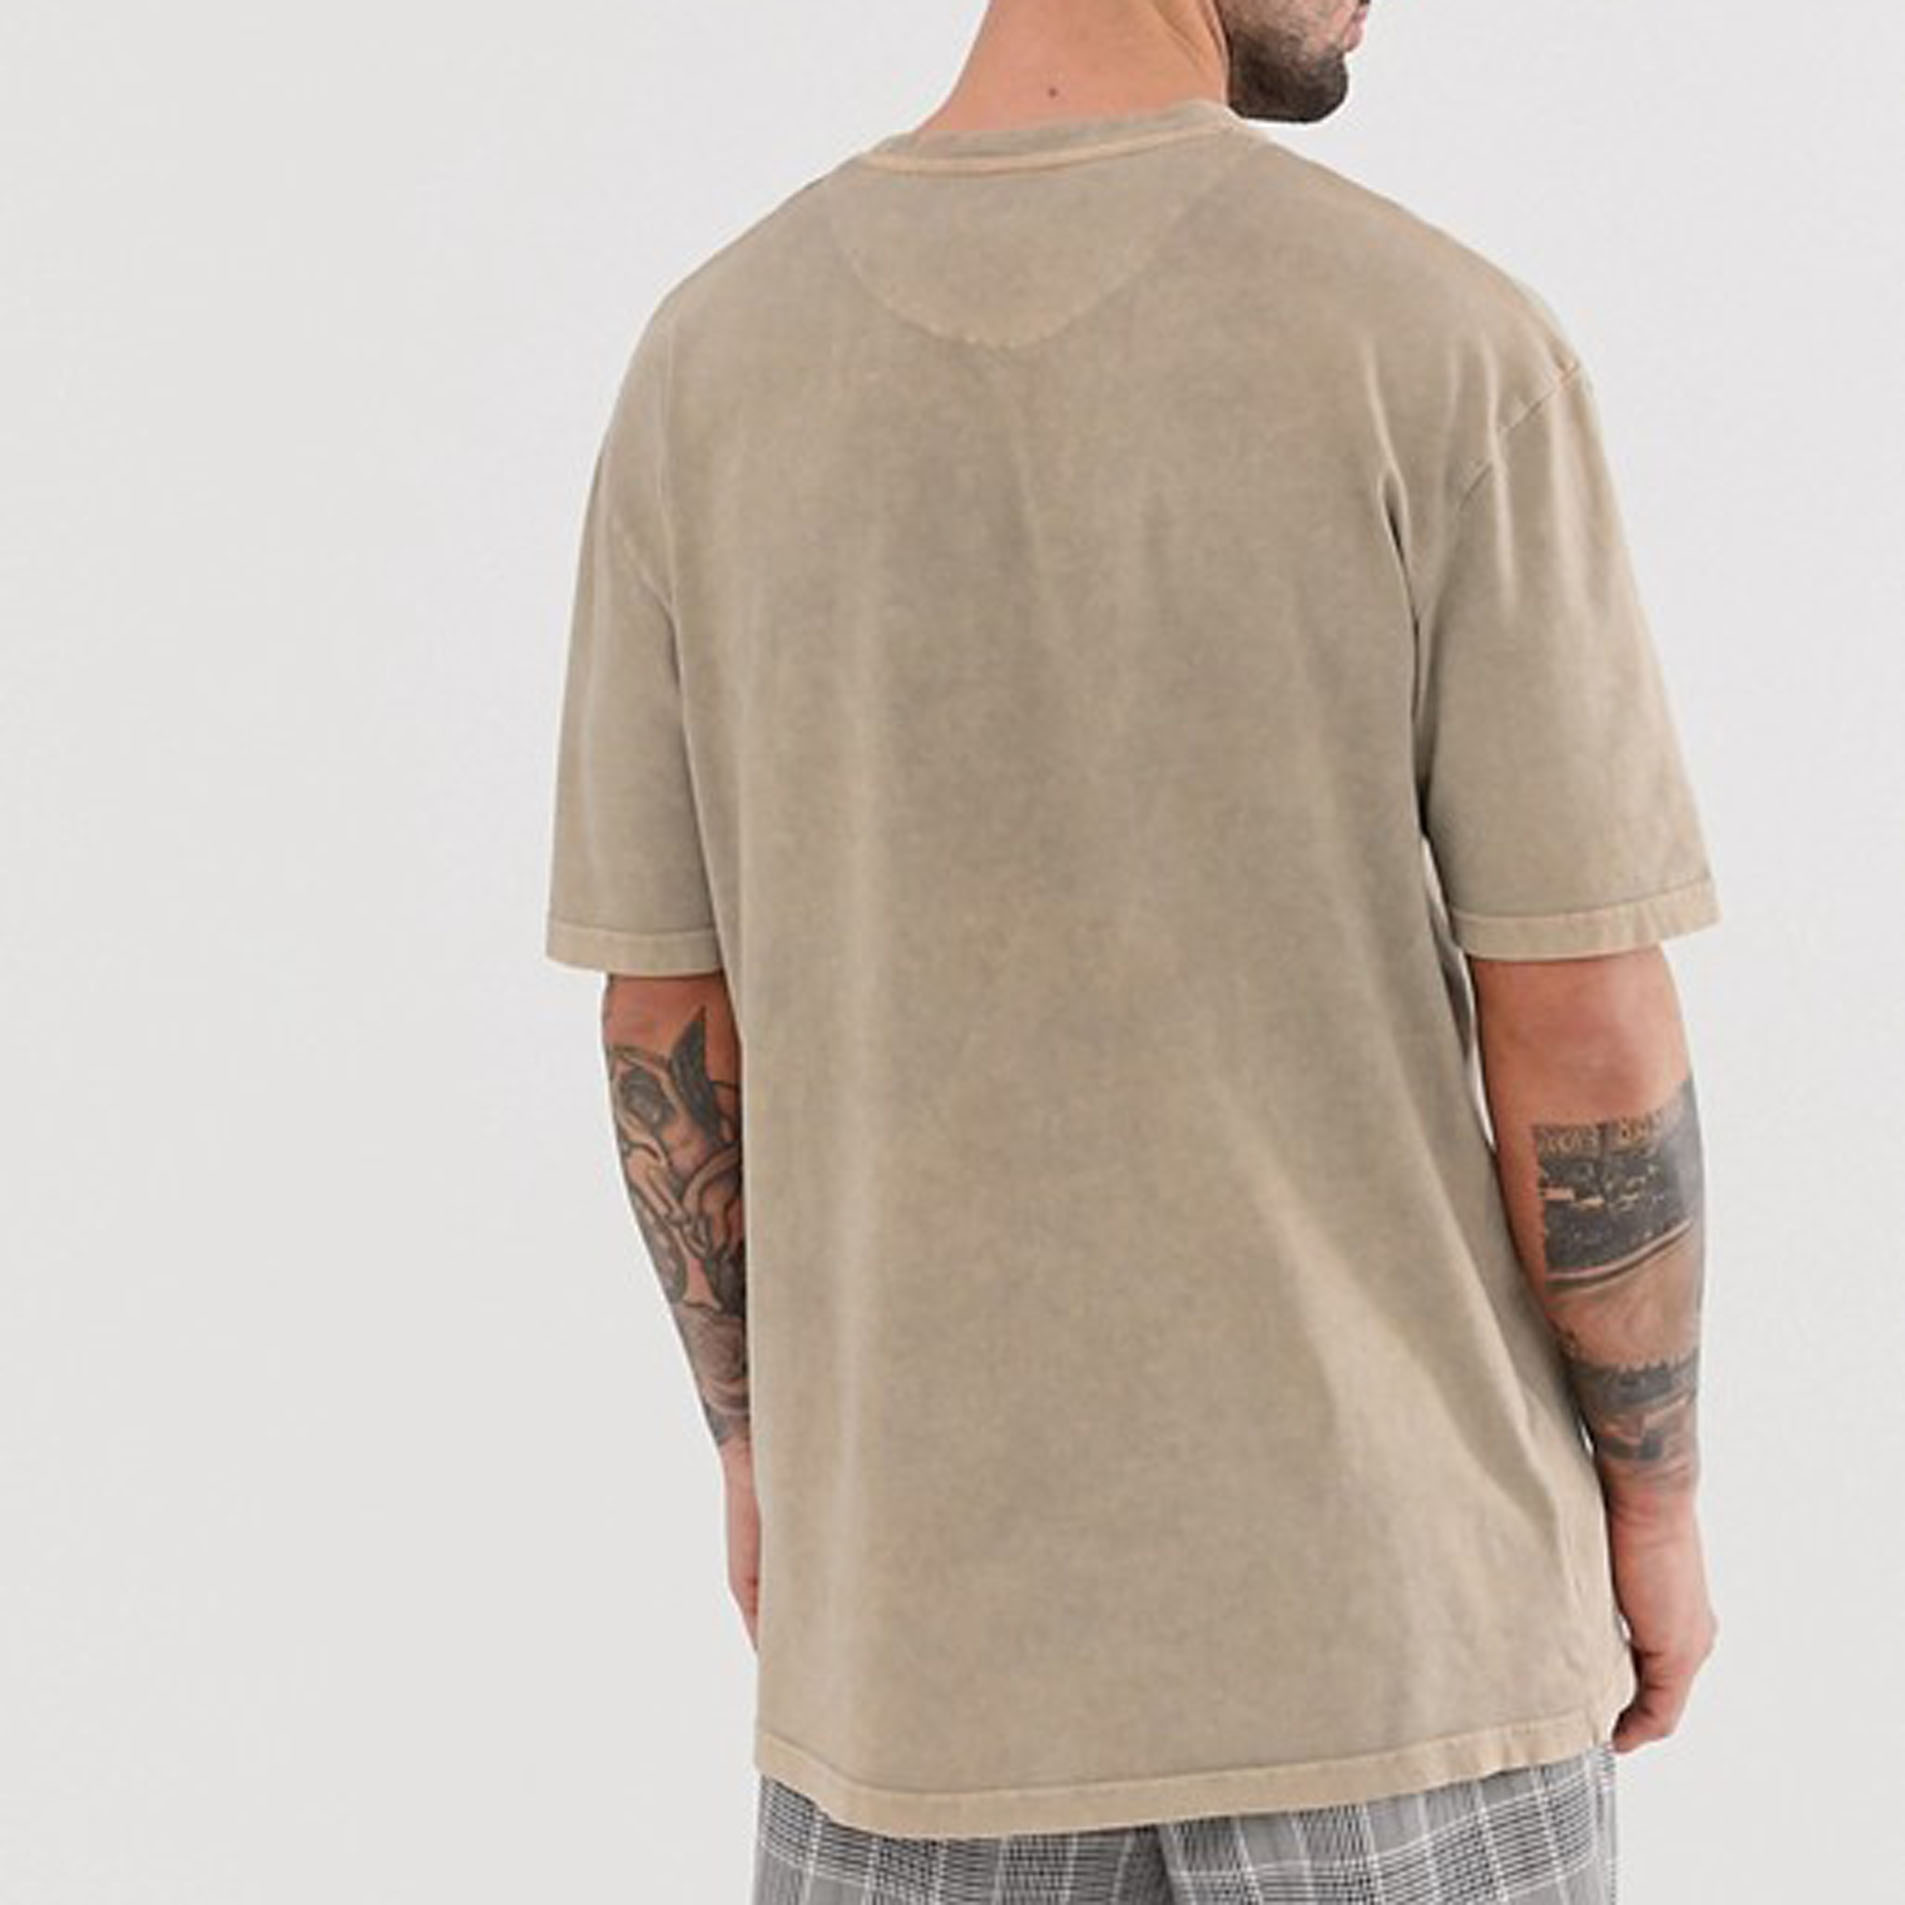 2019 Men fashion design oversized plain vintage stone  washed t shirts